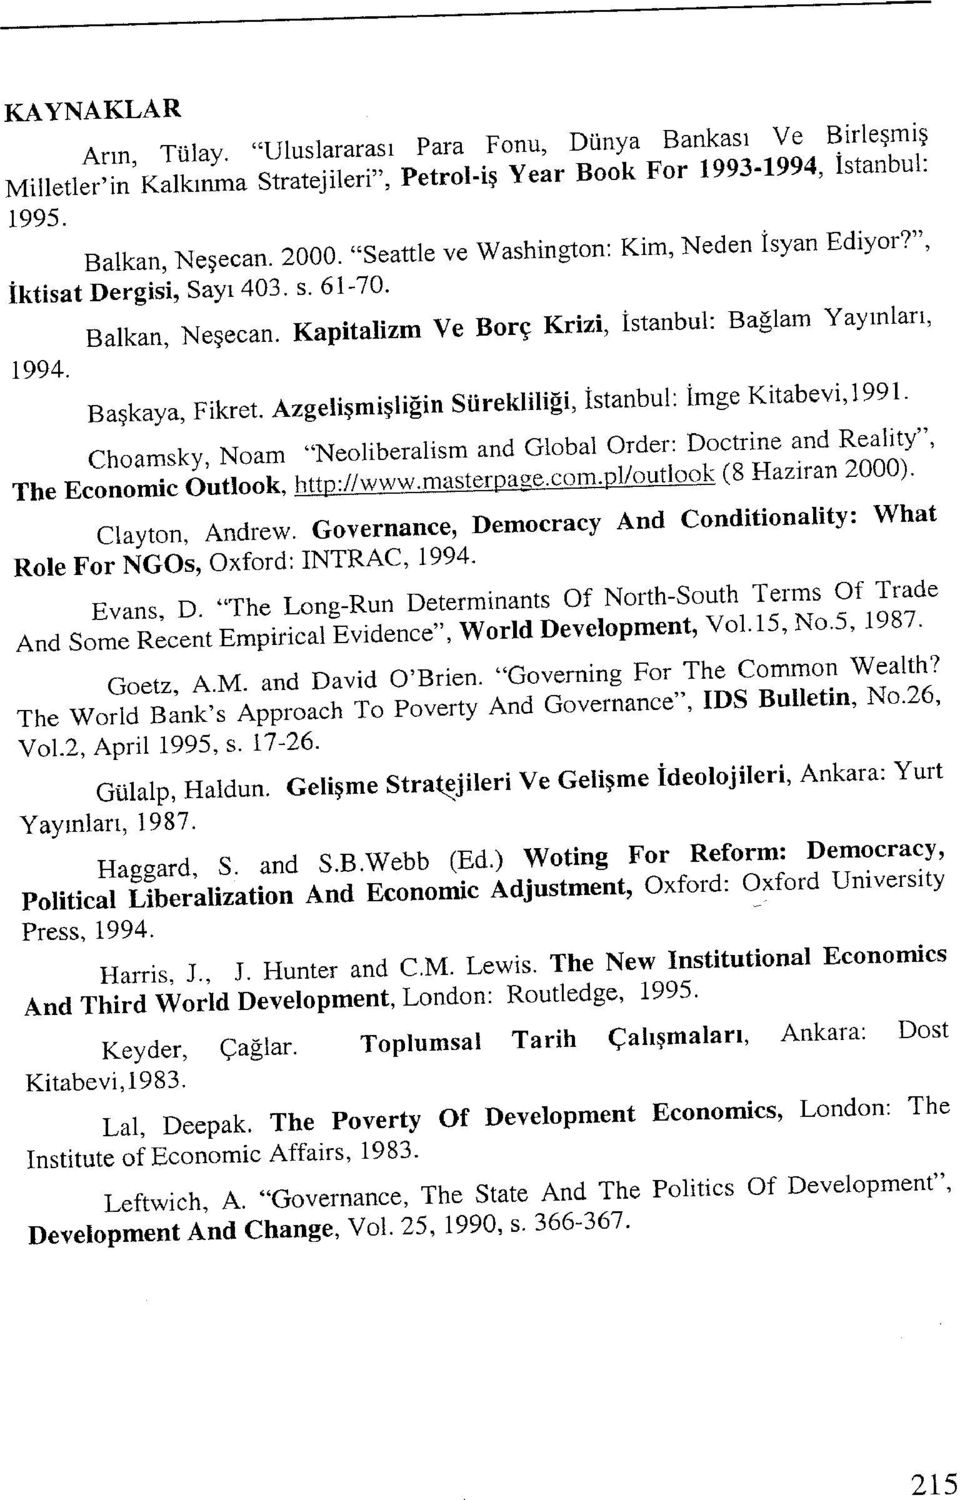 "Azgelişmişliğin Sürekliliği, İstanbul: İmge Kitabevi, 1991. Choamsky, Noam ""Neoliberalism and GlobalOrder: Doctrine and Reality"", The Economic Outlook, http://www.masterpage.com."